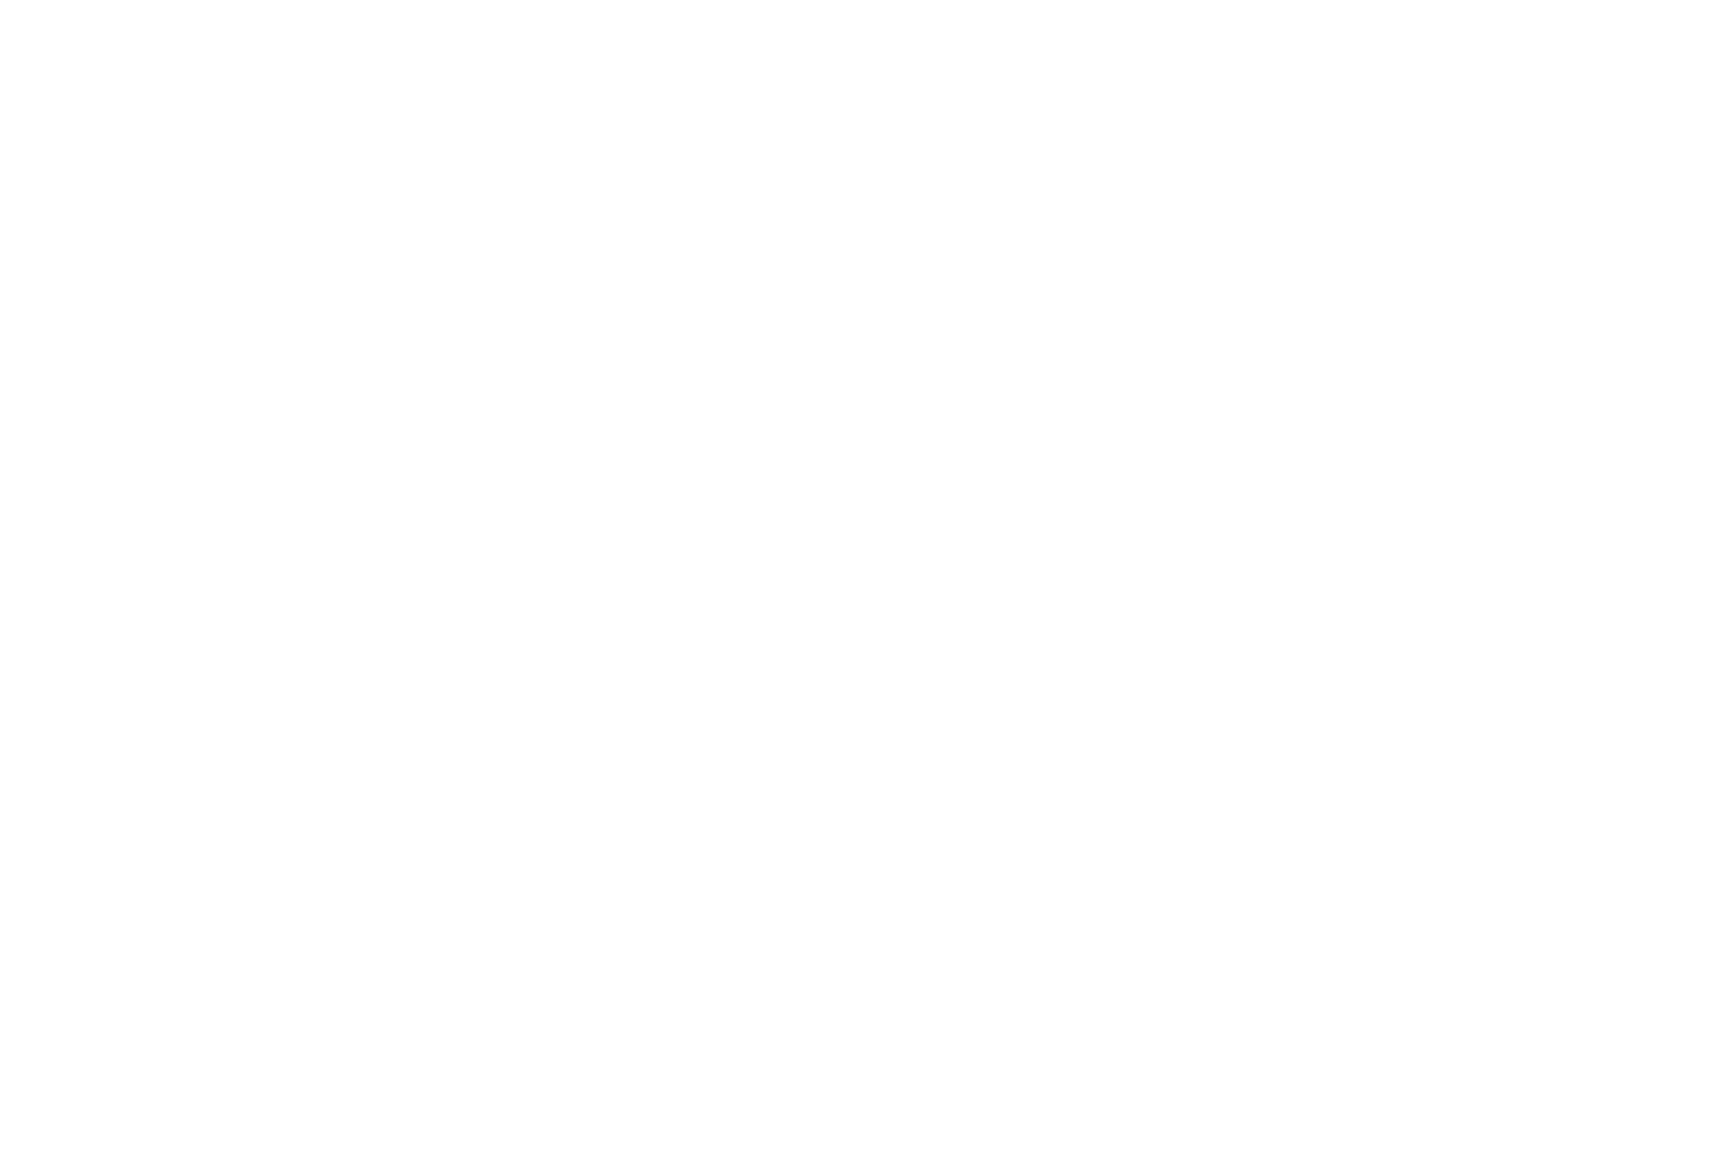 OFFICIAL SELECTION - MOUNTAIN ADVENTURE FILM FESTIVAL - 2019 (1)